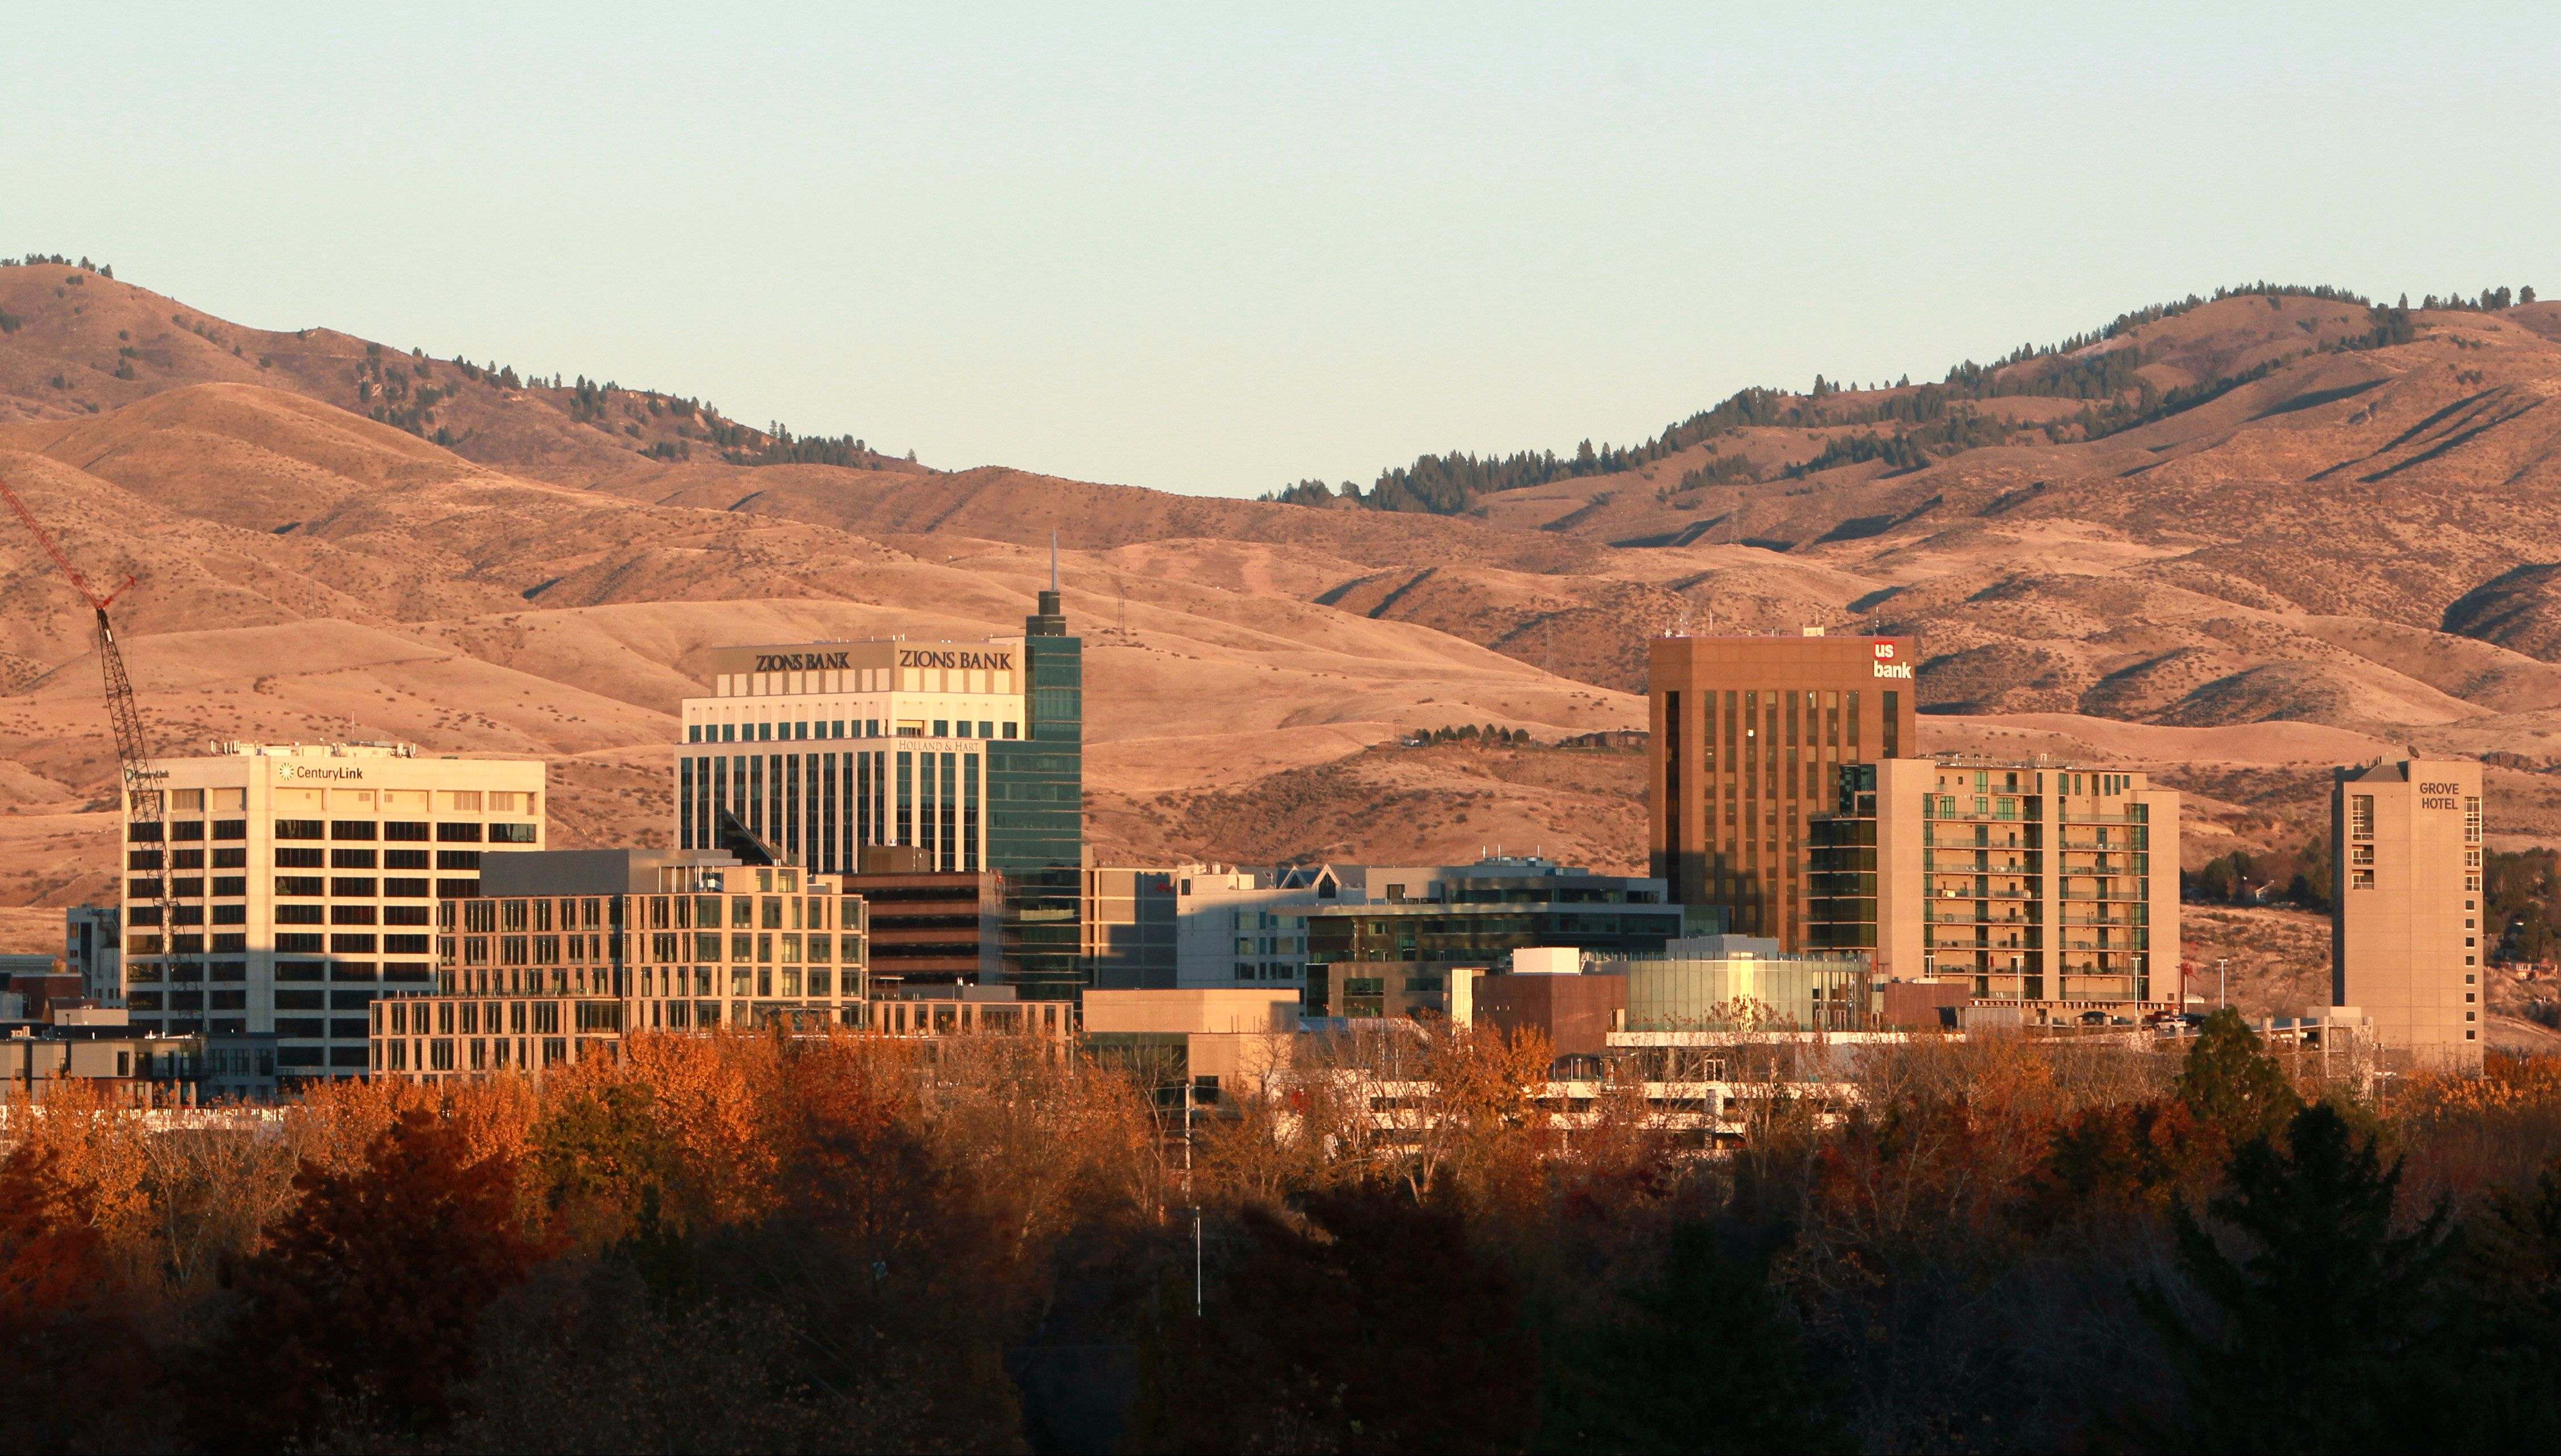 Boise, Idaho, wasAmerica's 79th most unequal city in 2011. By 2016, it had jumped to seventh